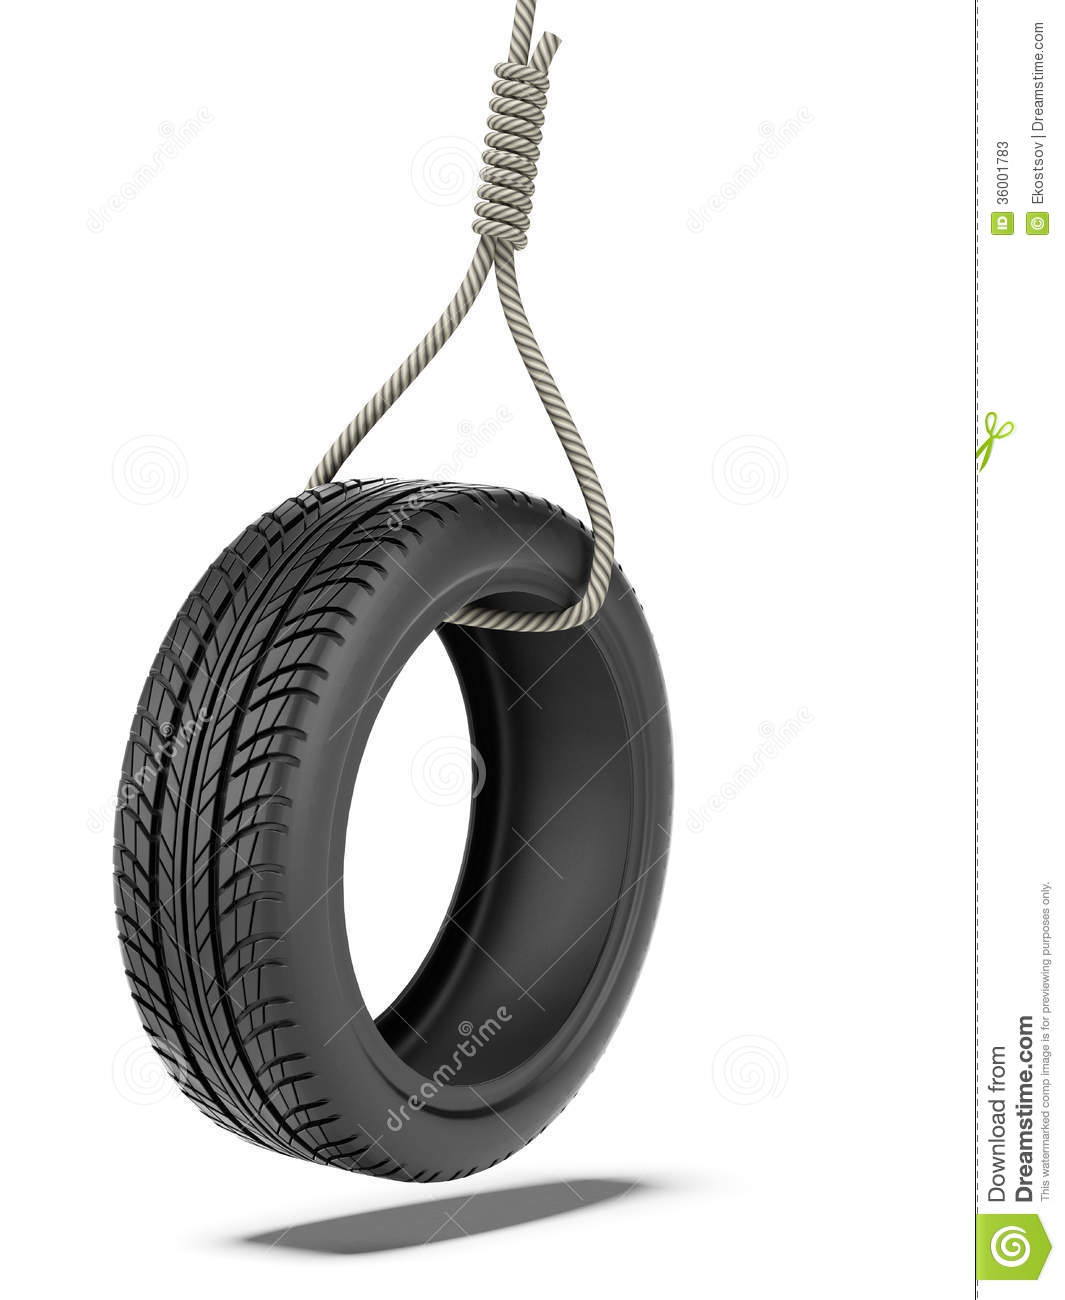 Tire swing over stock illustration image of rope rubber for Rope swing plans